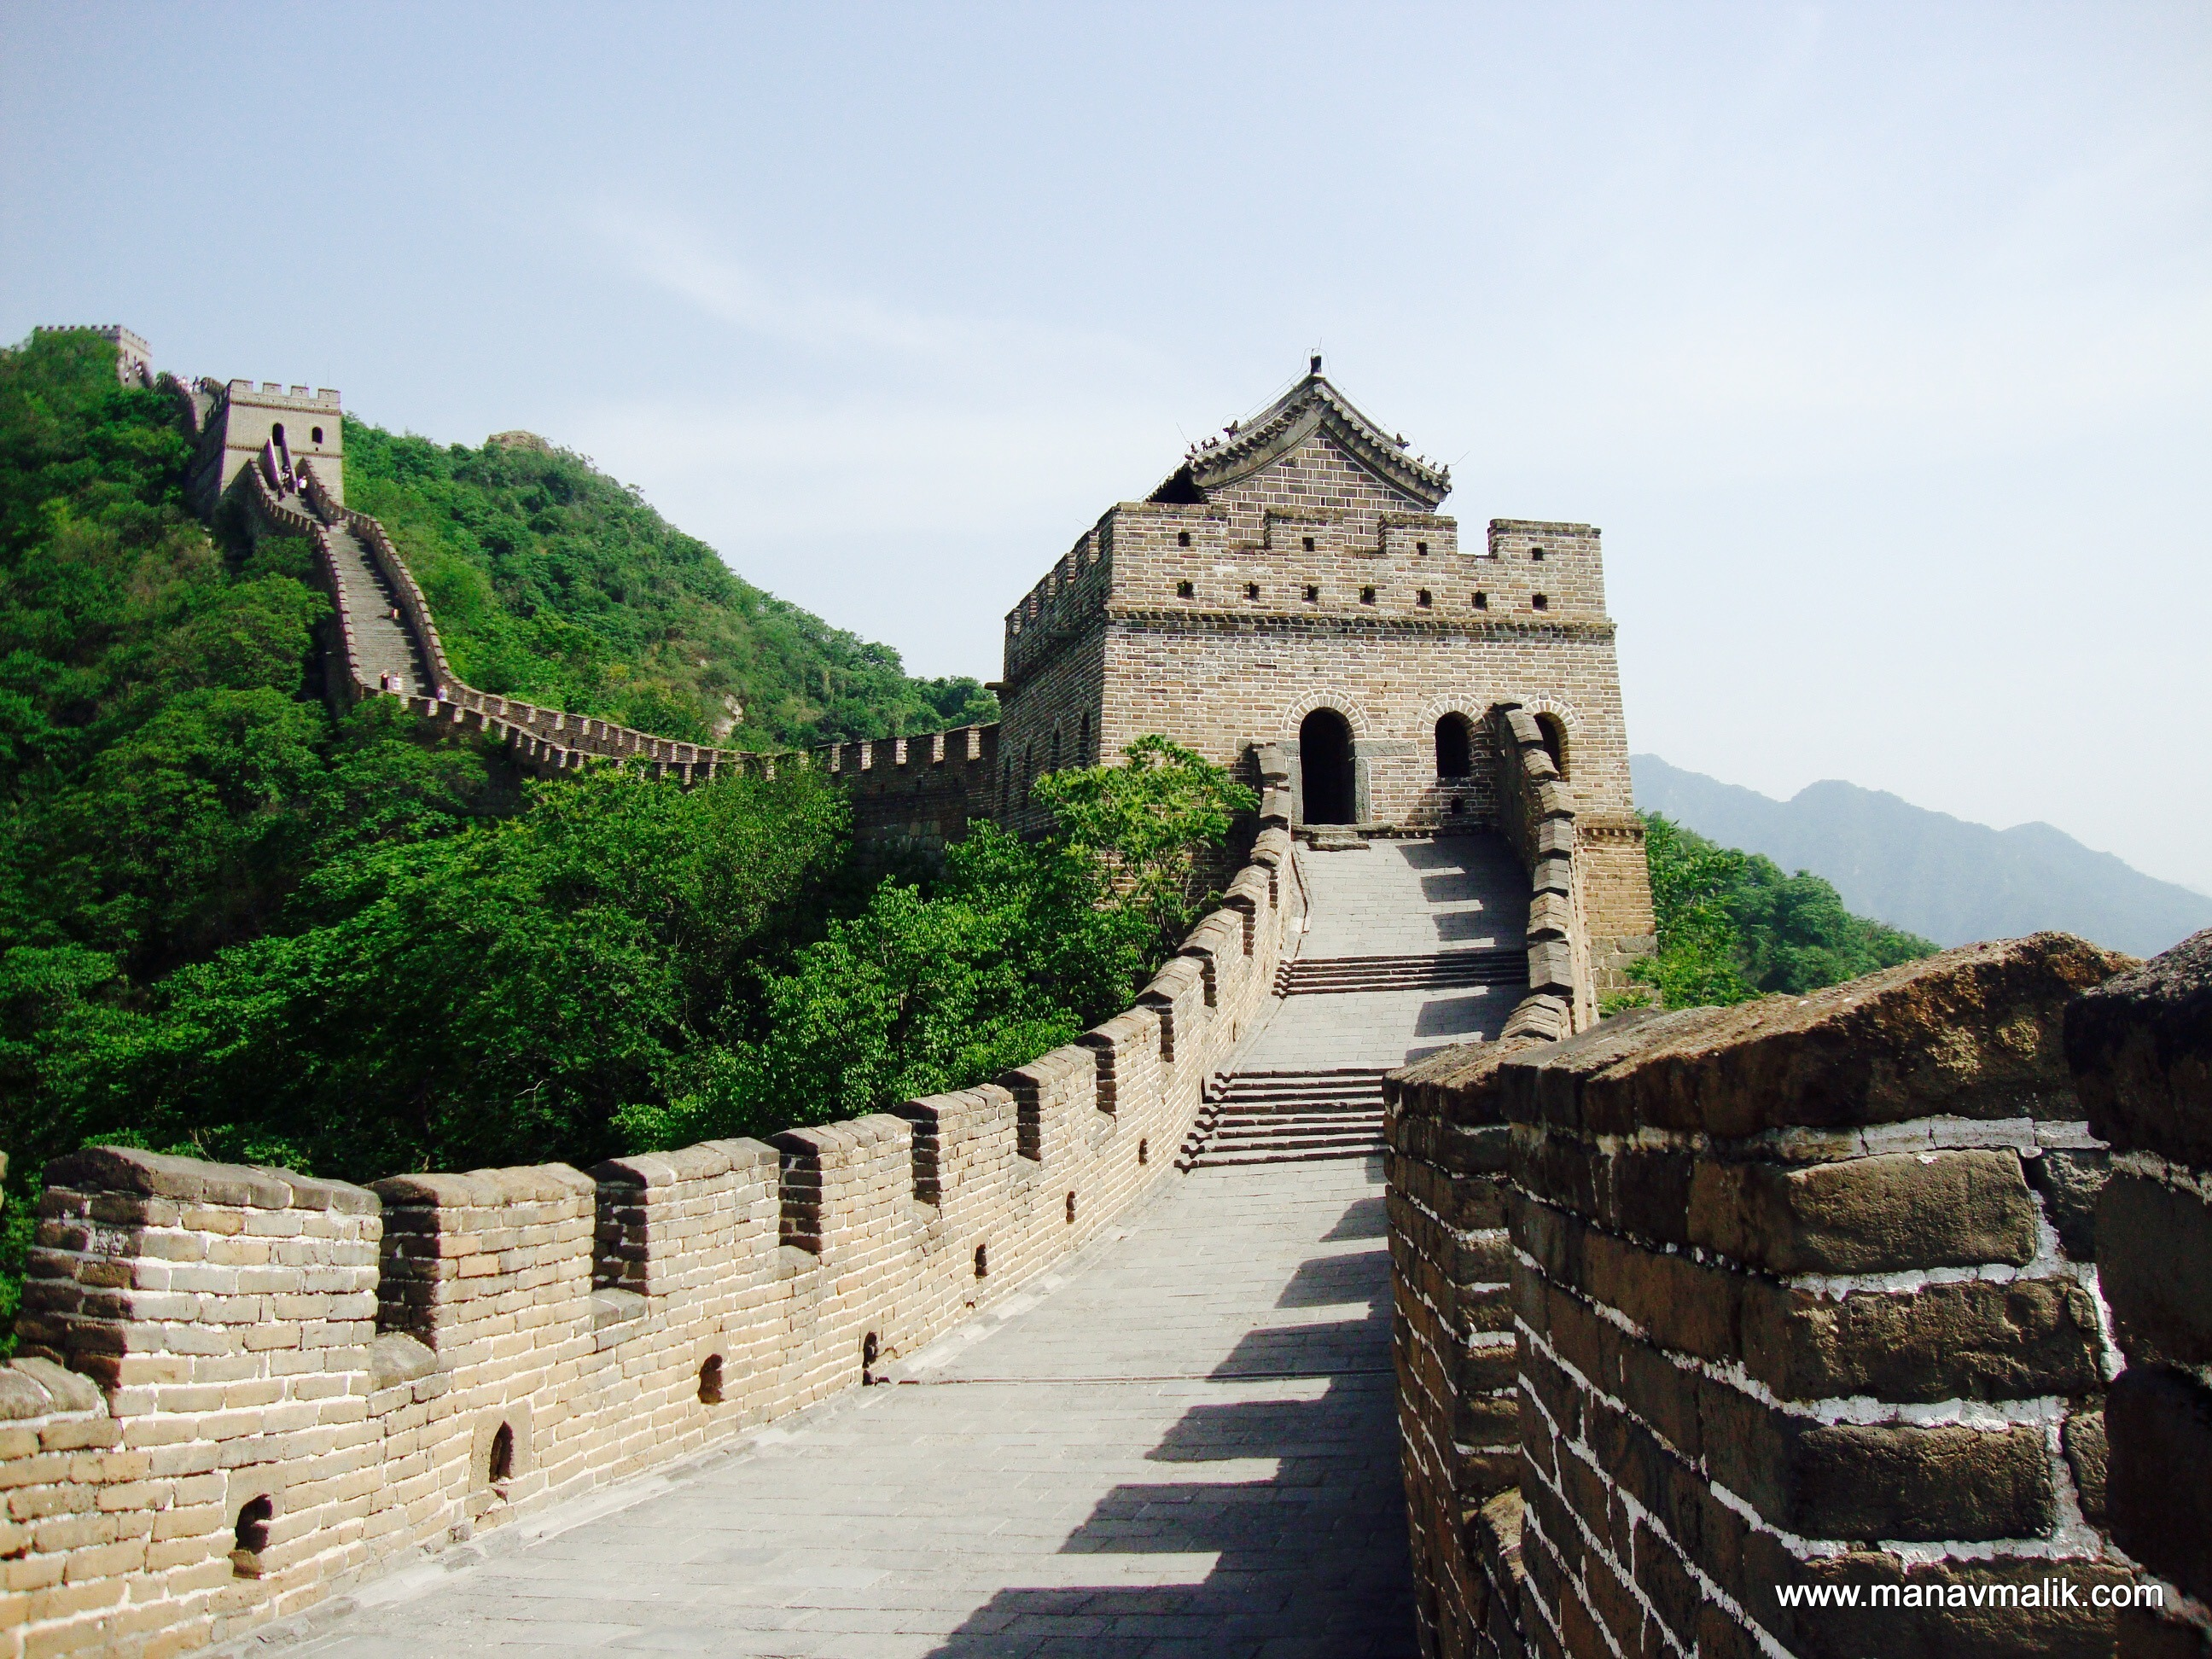 View of the wall with watch towers